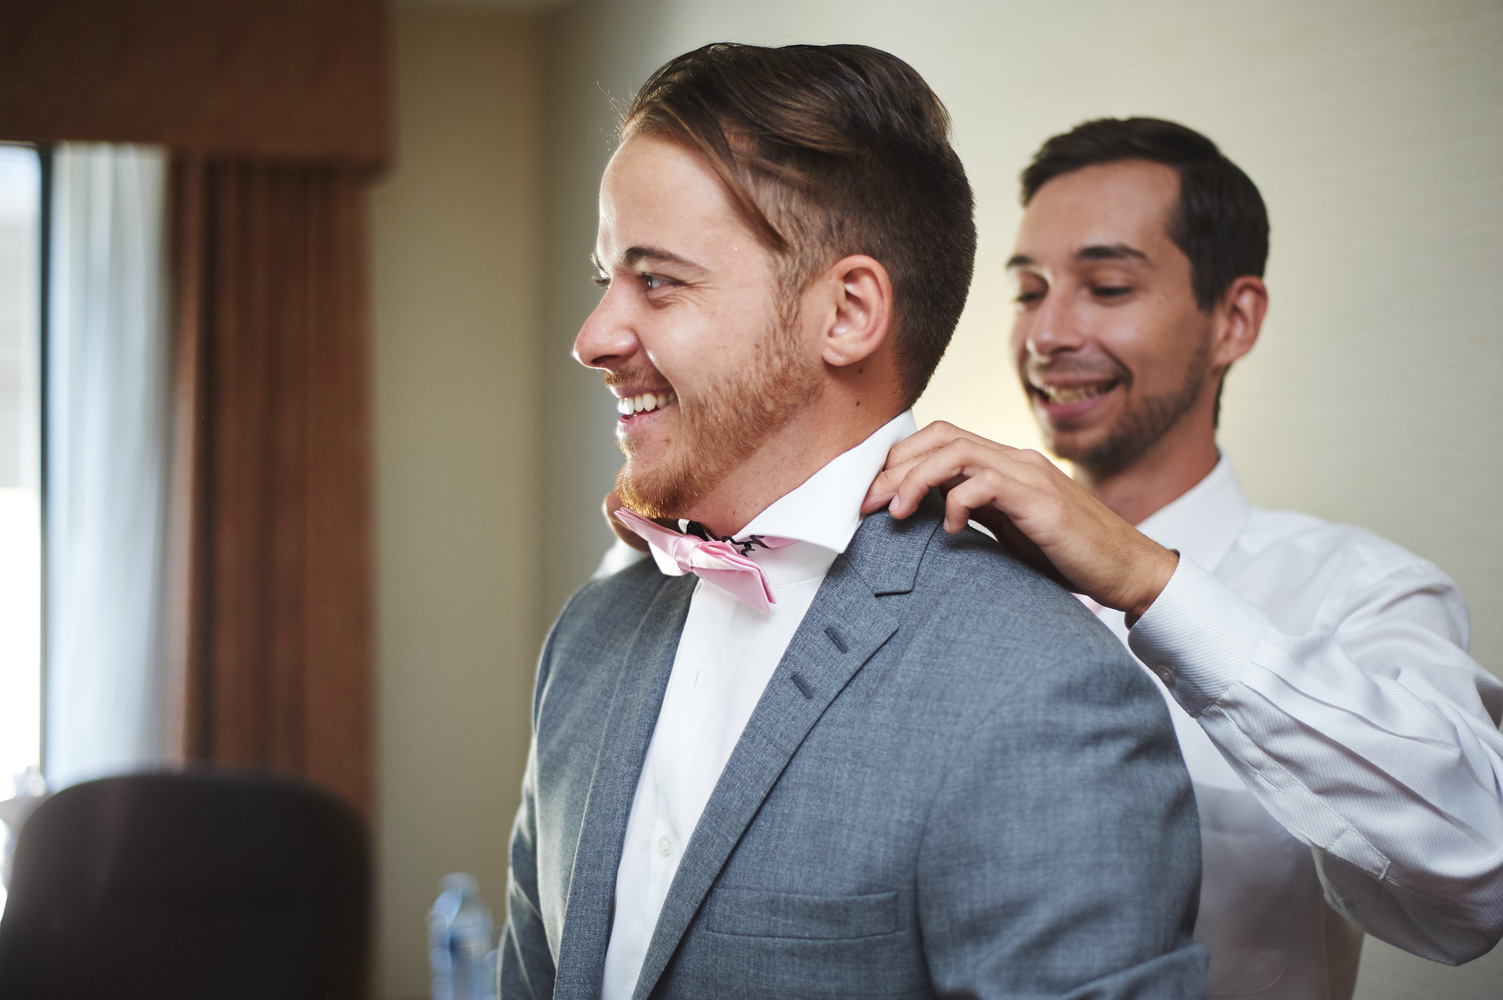 groom-having-his-collar-adjusted-by-a-groomsman.jpg